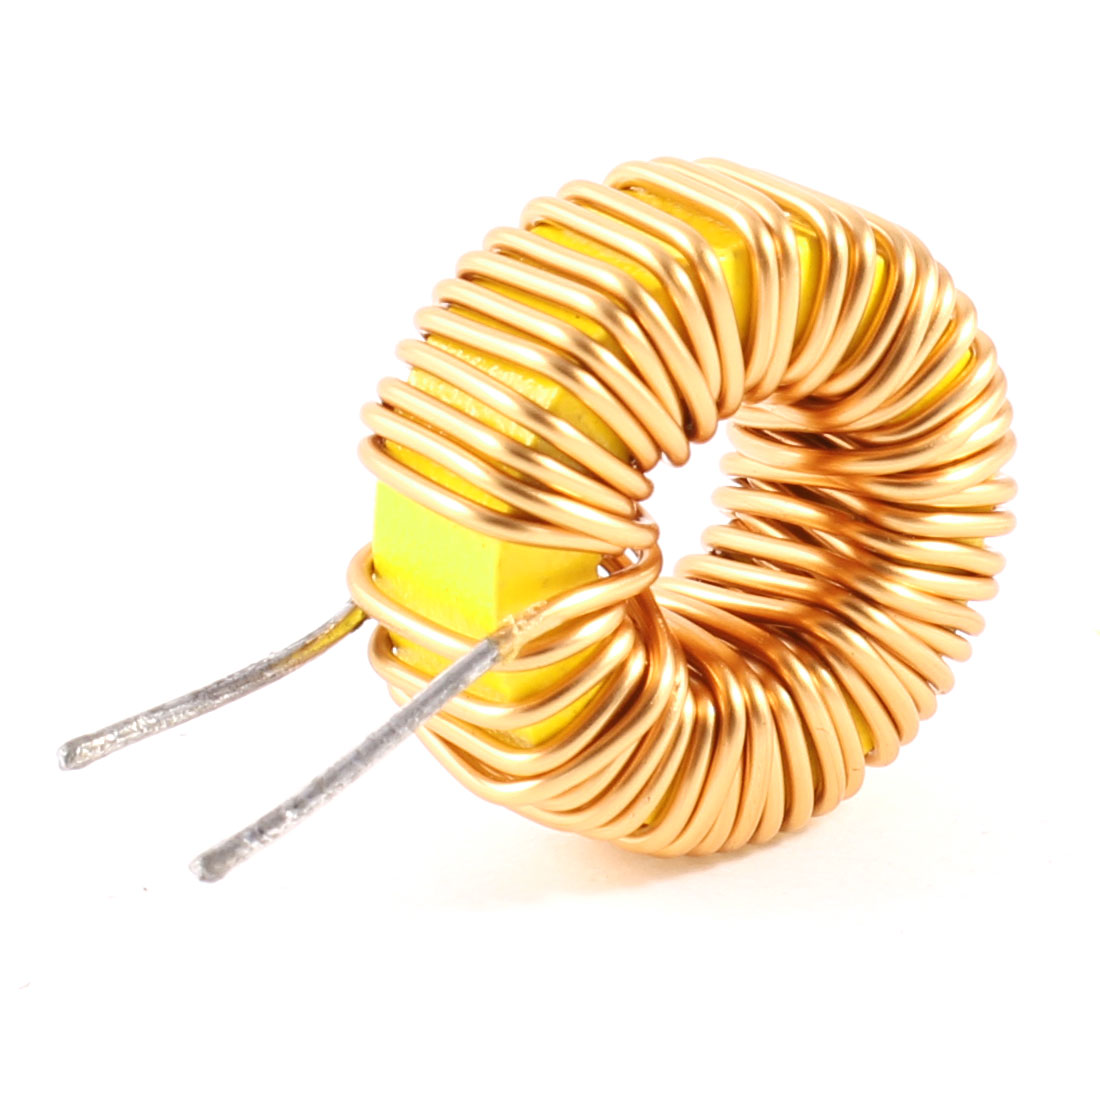 Toroid Core Inductor Wire Wind Wound 100uH 34mOhm 5A Coil